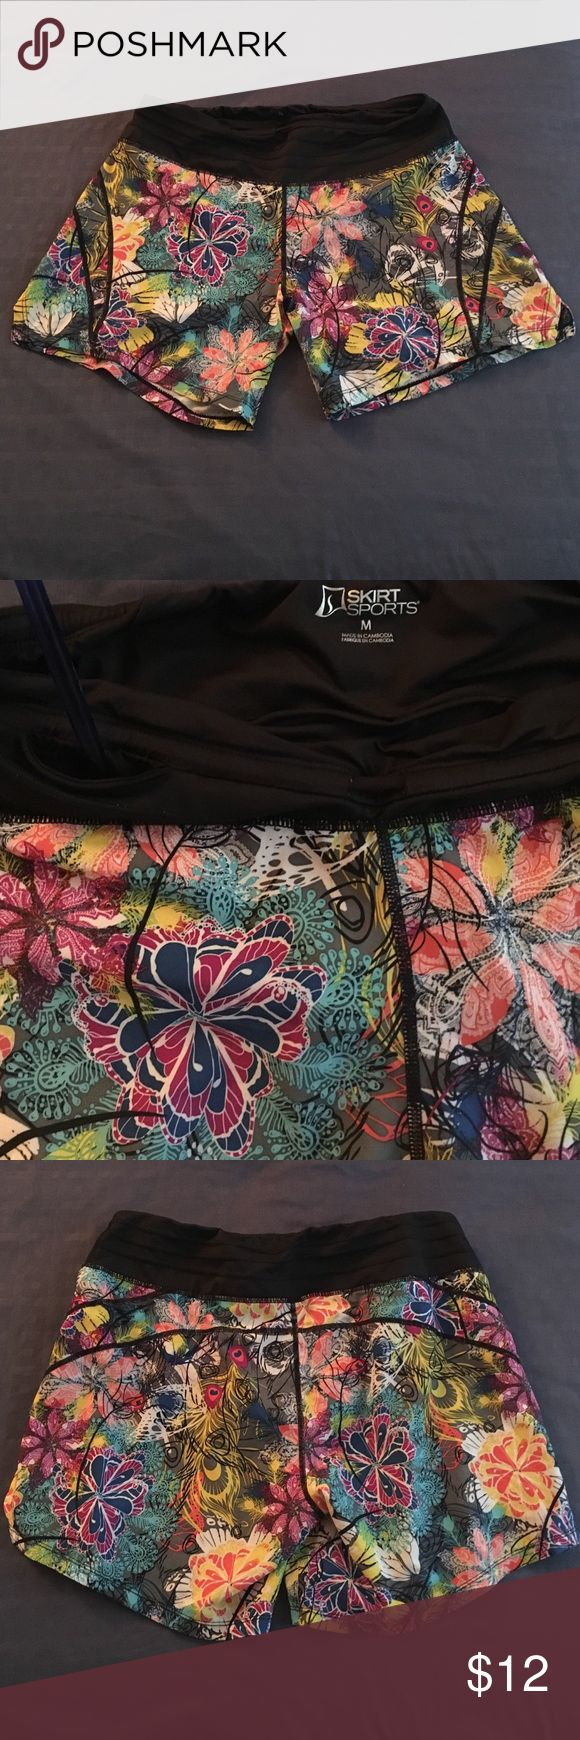 """Tantrum Print Go Longer Shorts Skirt Sports women's M running shorts. 6"""" inseam, built in spankies, continuous drawcord, key pocket in waistband. I personally feel these run large, I normally wear size L/12 in bottoms, but I had to exchange the L for this M, and fits me well. Skirt Sports Shorts"""